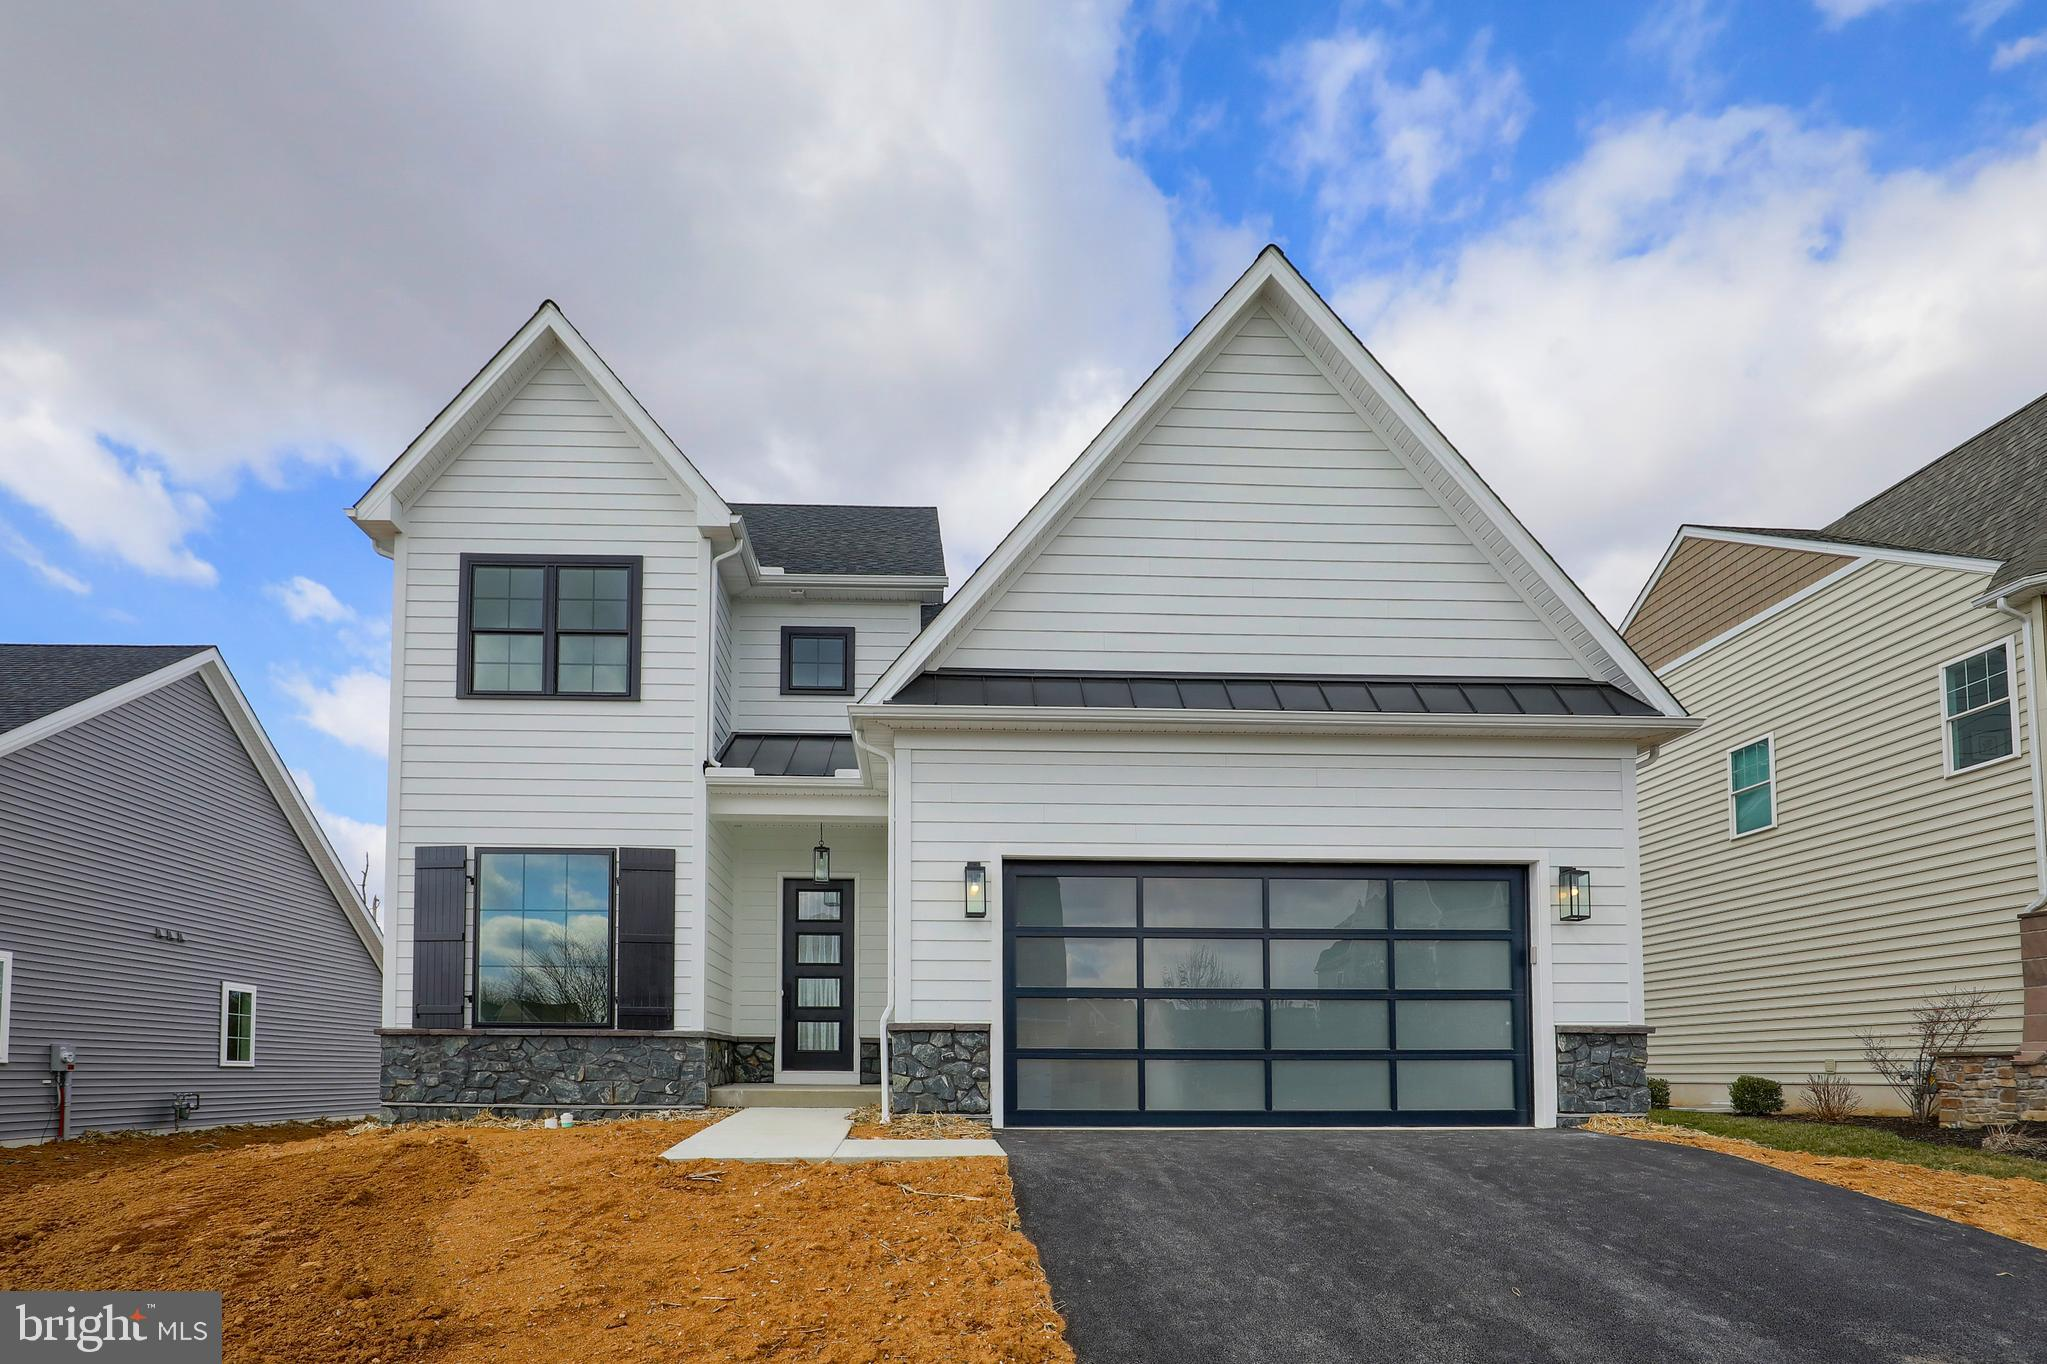 WILD LILAC DRIVE LOT #5, EAST PETERSBURG, PA 17520